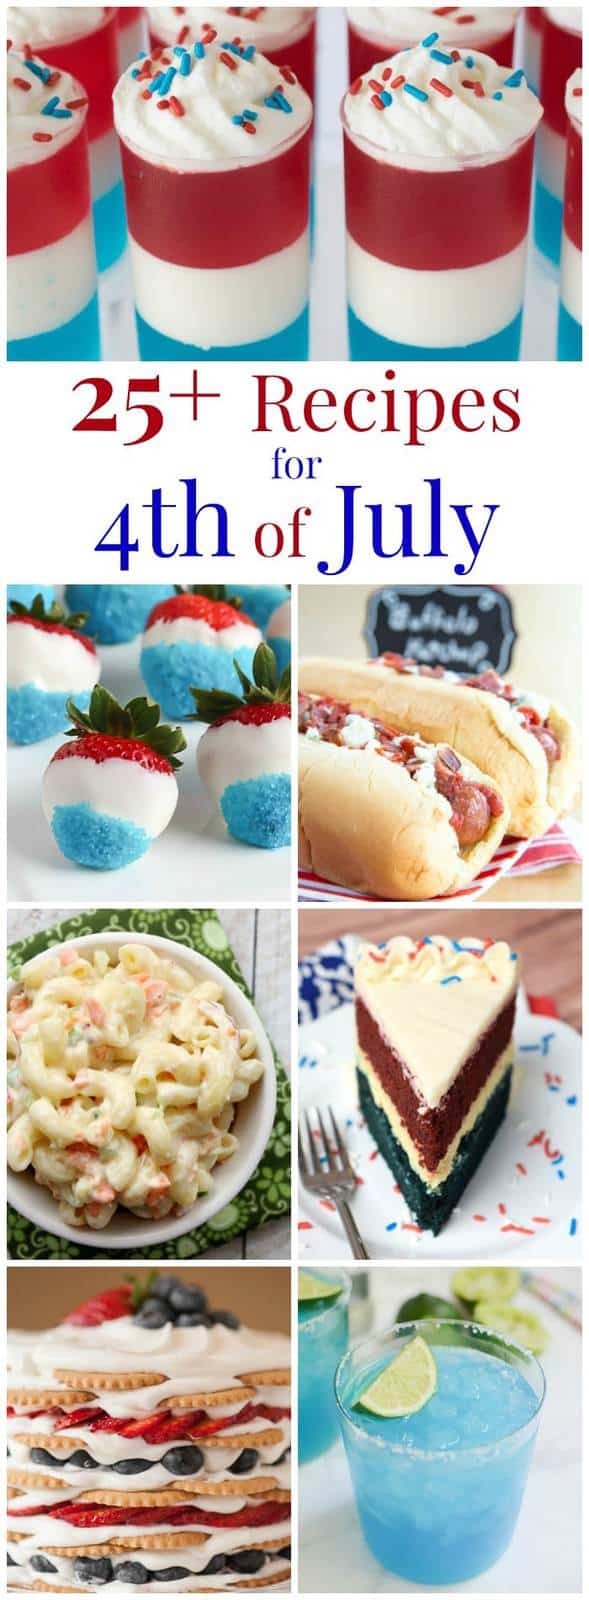 25+ Fourth of July Recipes - mains, sides, cocktails, and plenty of red, white and blue desserts for you July 4th celebration! | cupcakesandkalechips.com